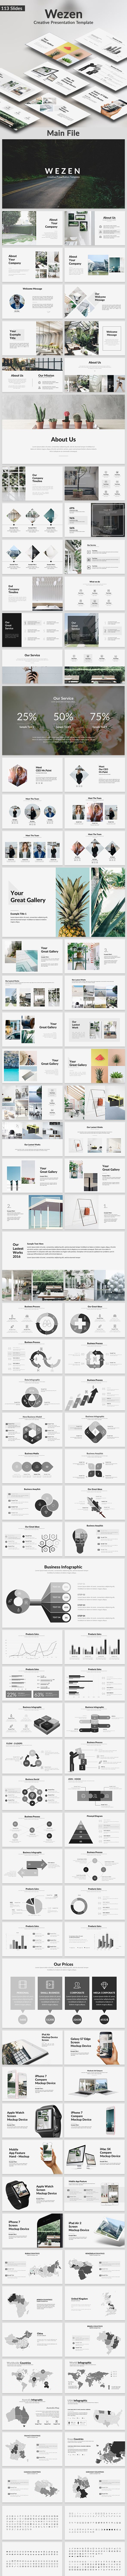 Wezen  Creative Google Slide Template — Google Slides PPTX #easy #free icons • Download ➝ https://graphicriver.net/item/wezen-creative-google-slide-template/19426874?ref=pxcr